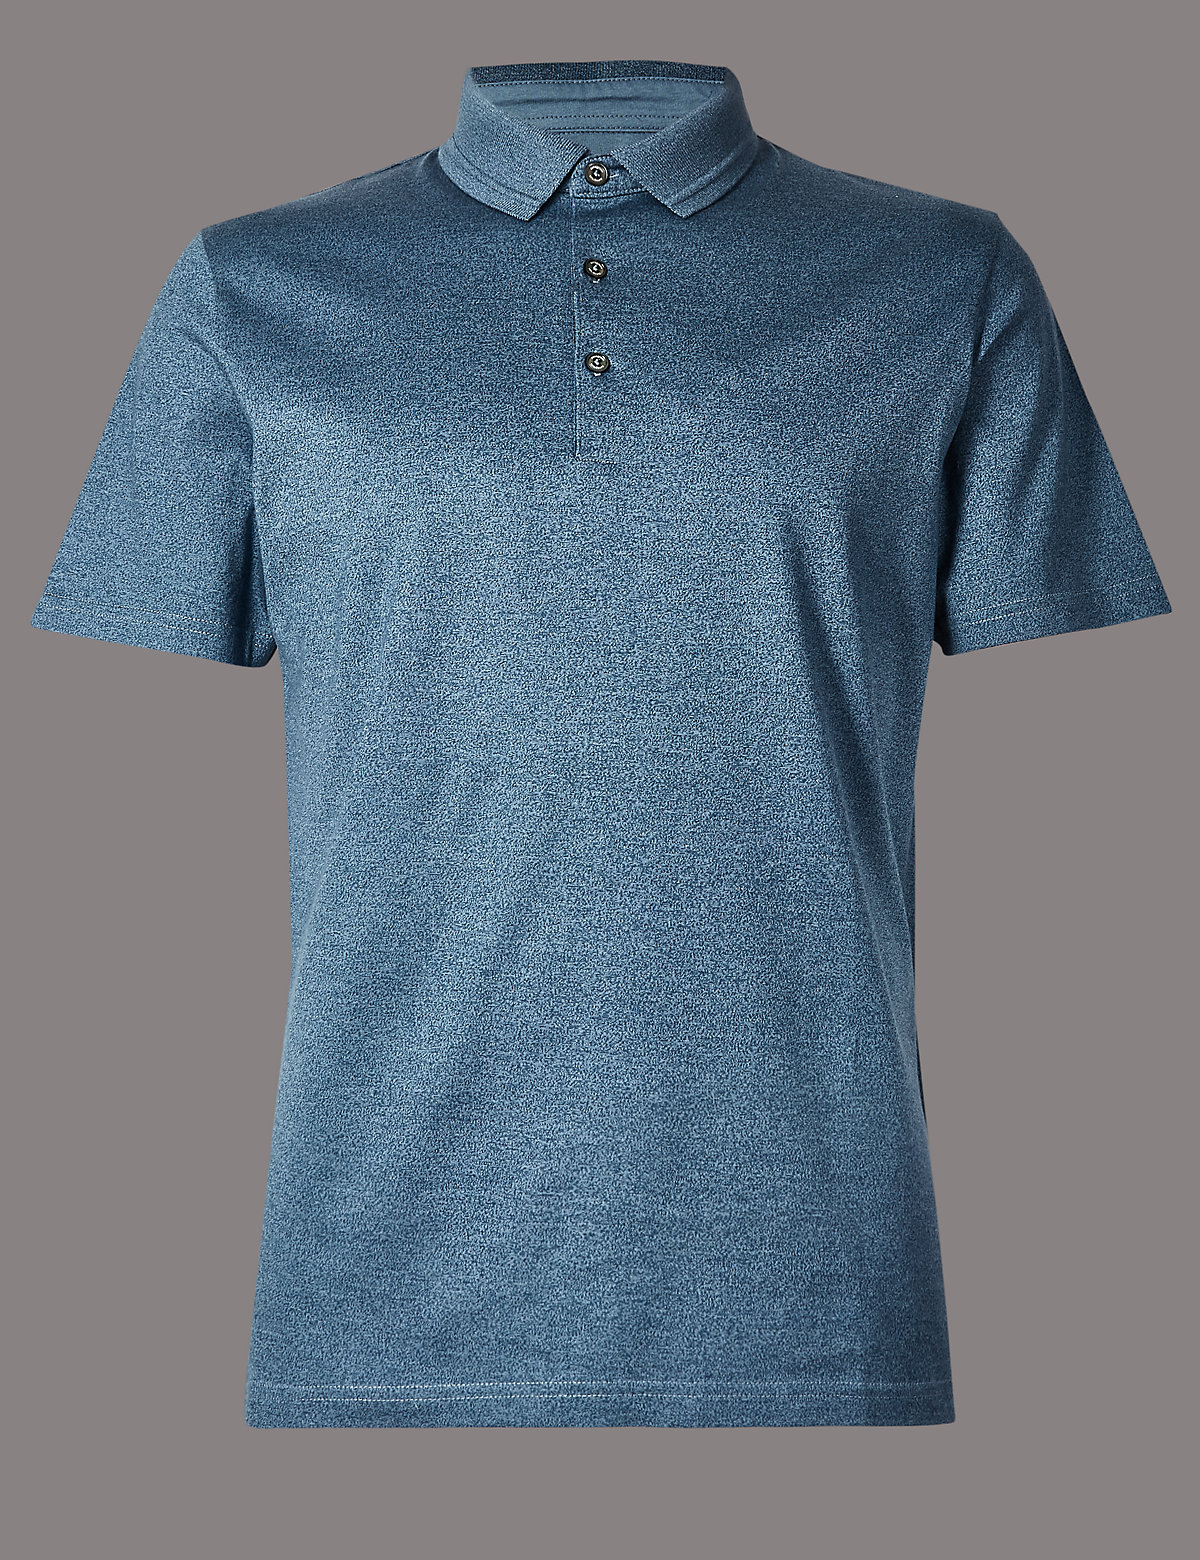 Marks & Spencer Blue Mix Pure Cotton Textured Polo Shirt